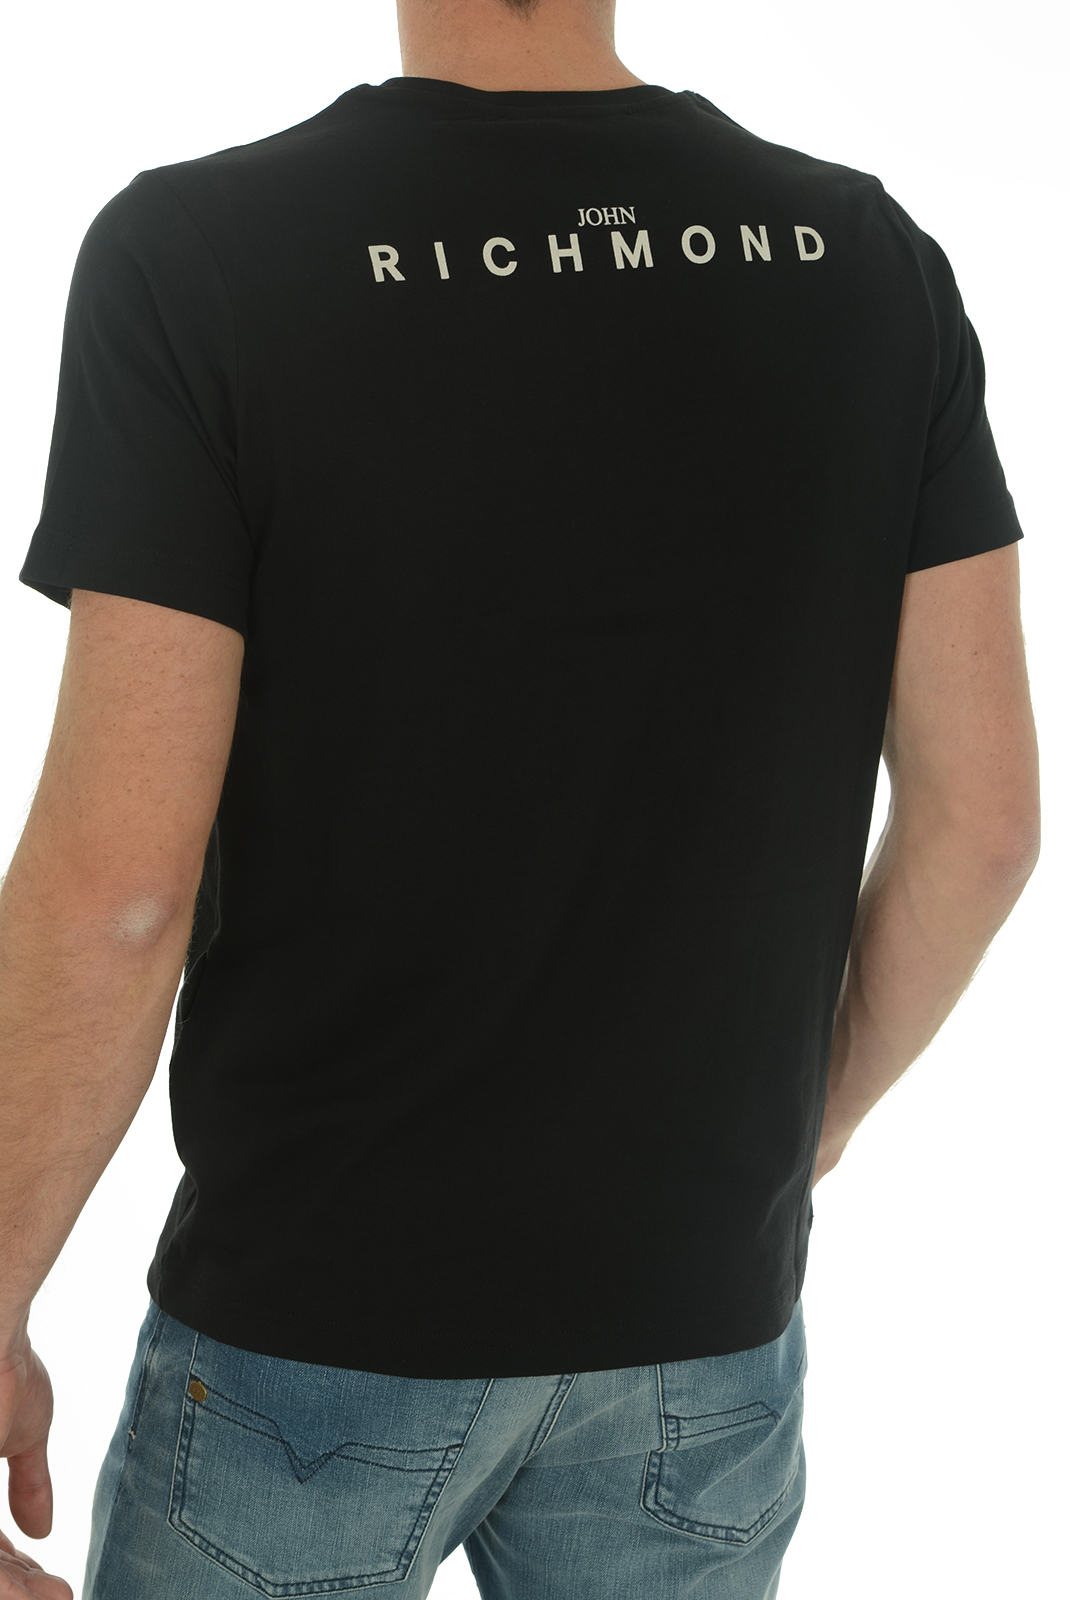 Tee-shirts  John richmond SATUBINA W0083 NOIR